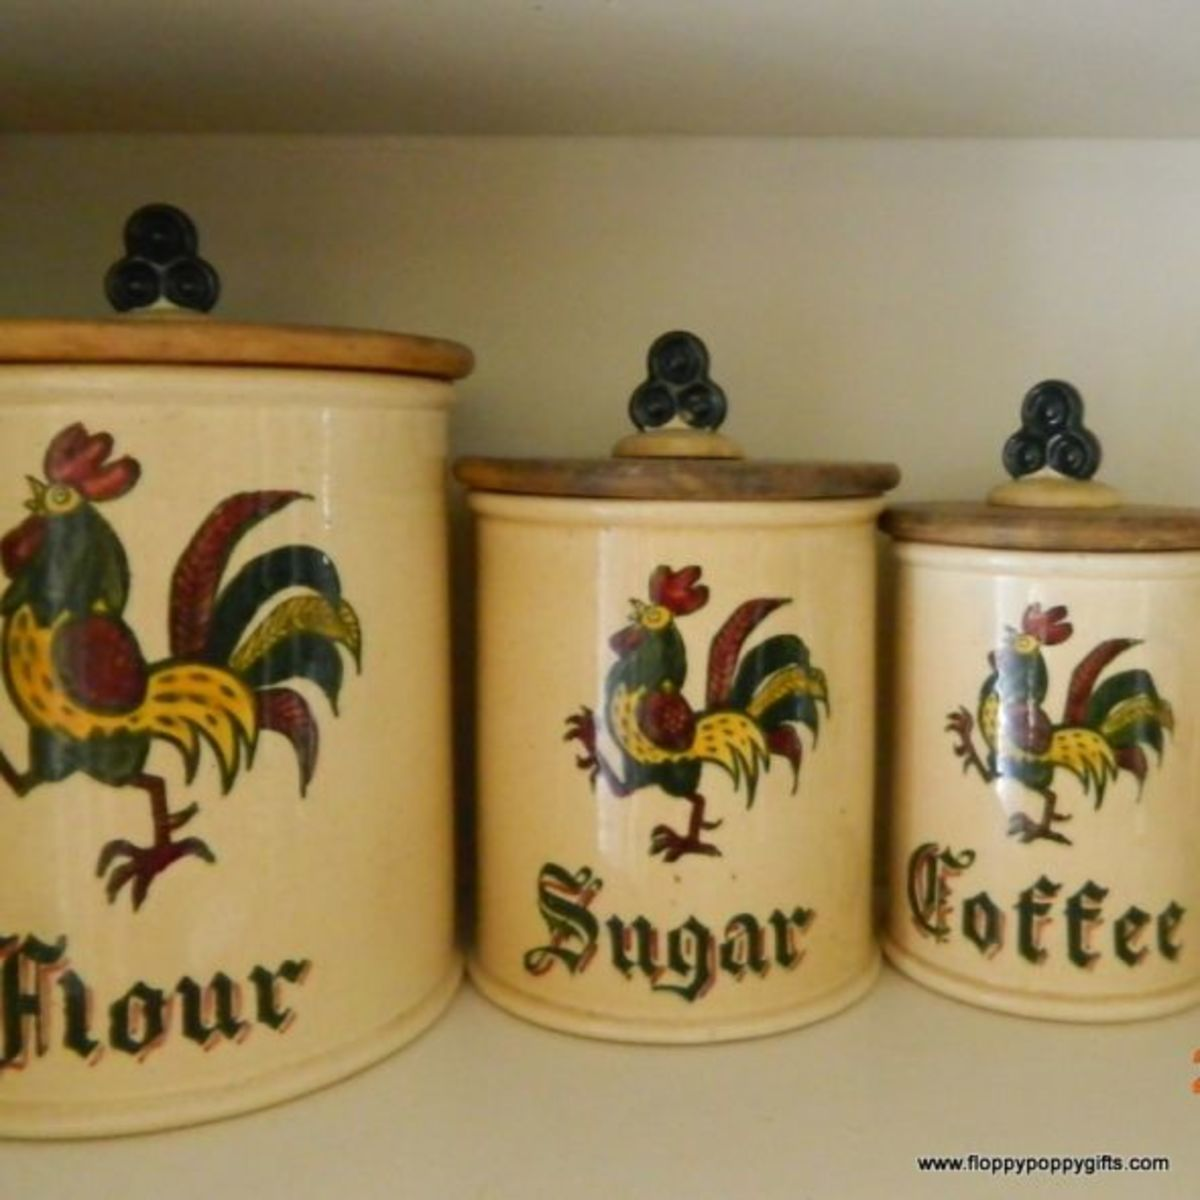 I have 4 canisters: Flour, Sugar, Coffee & Tea